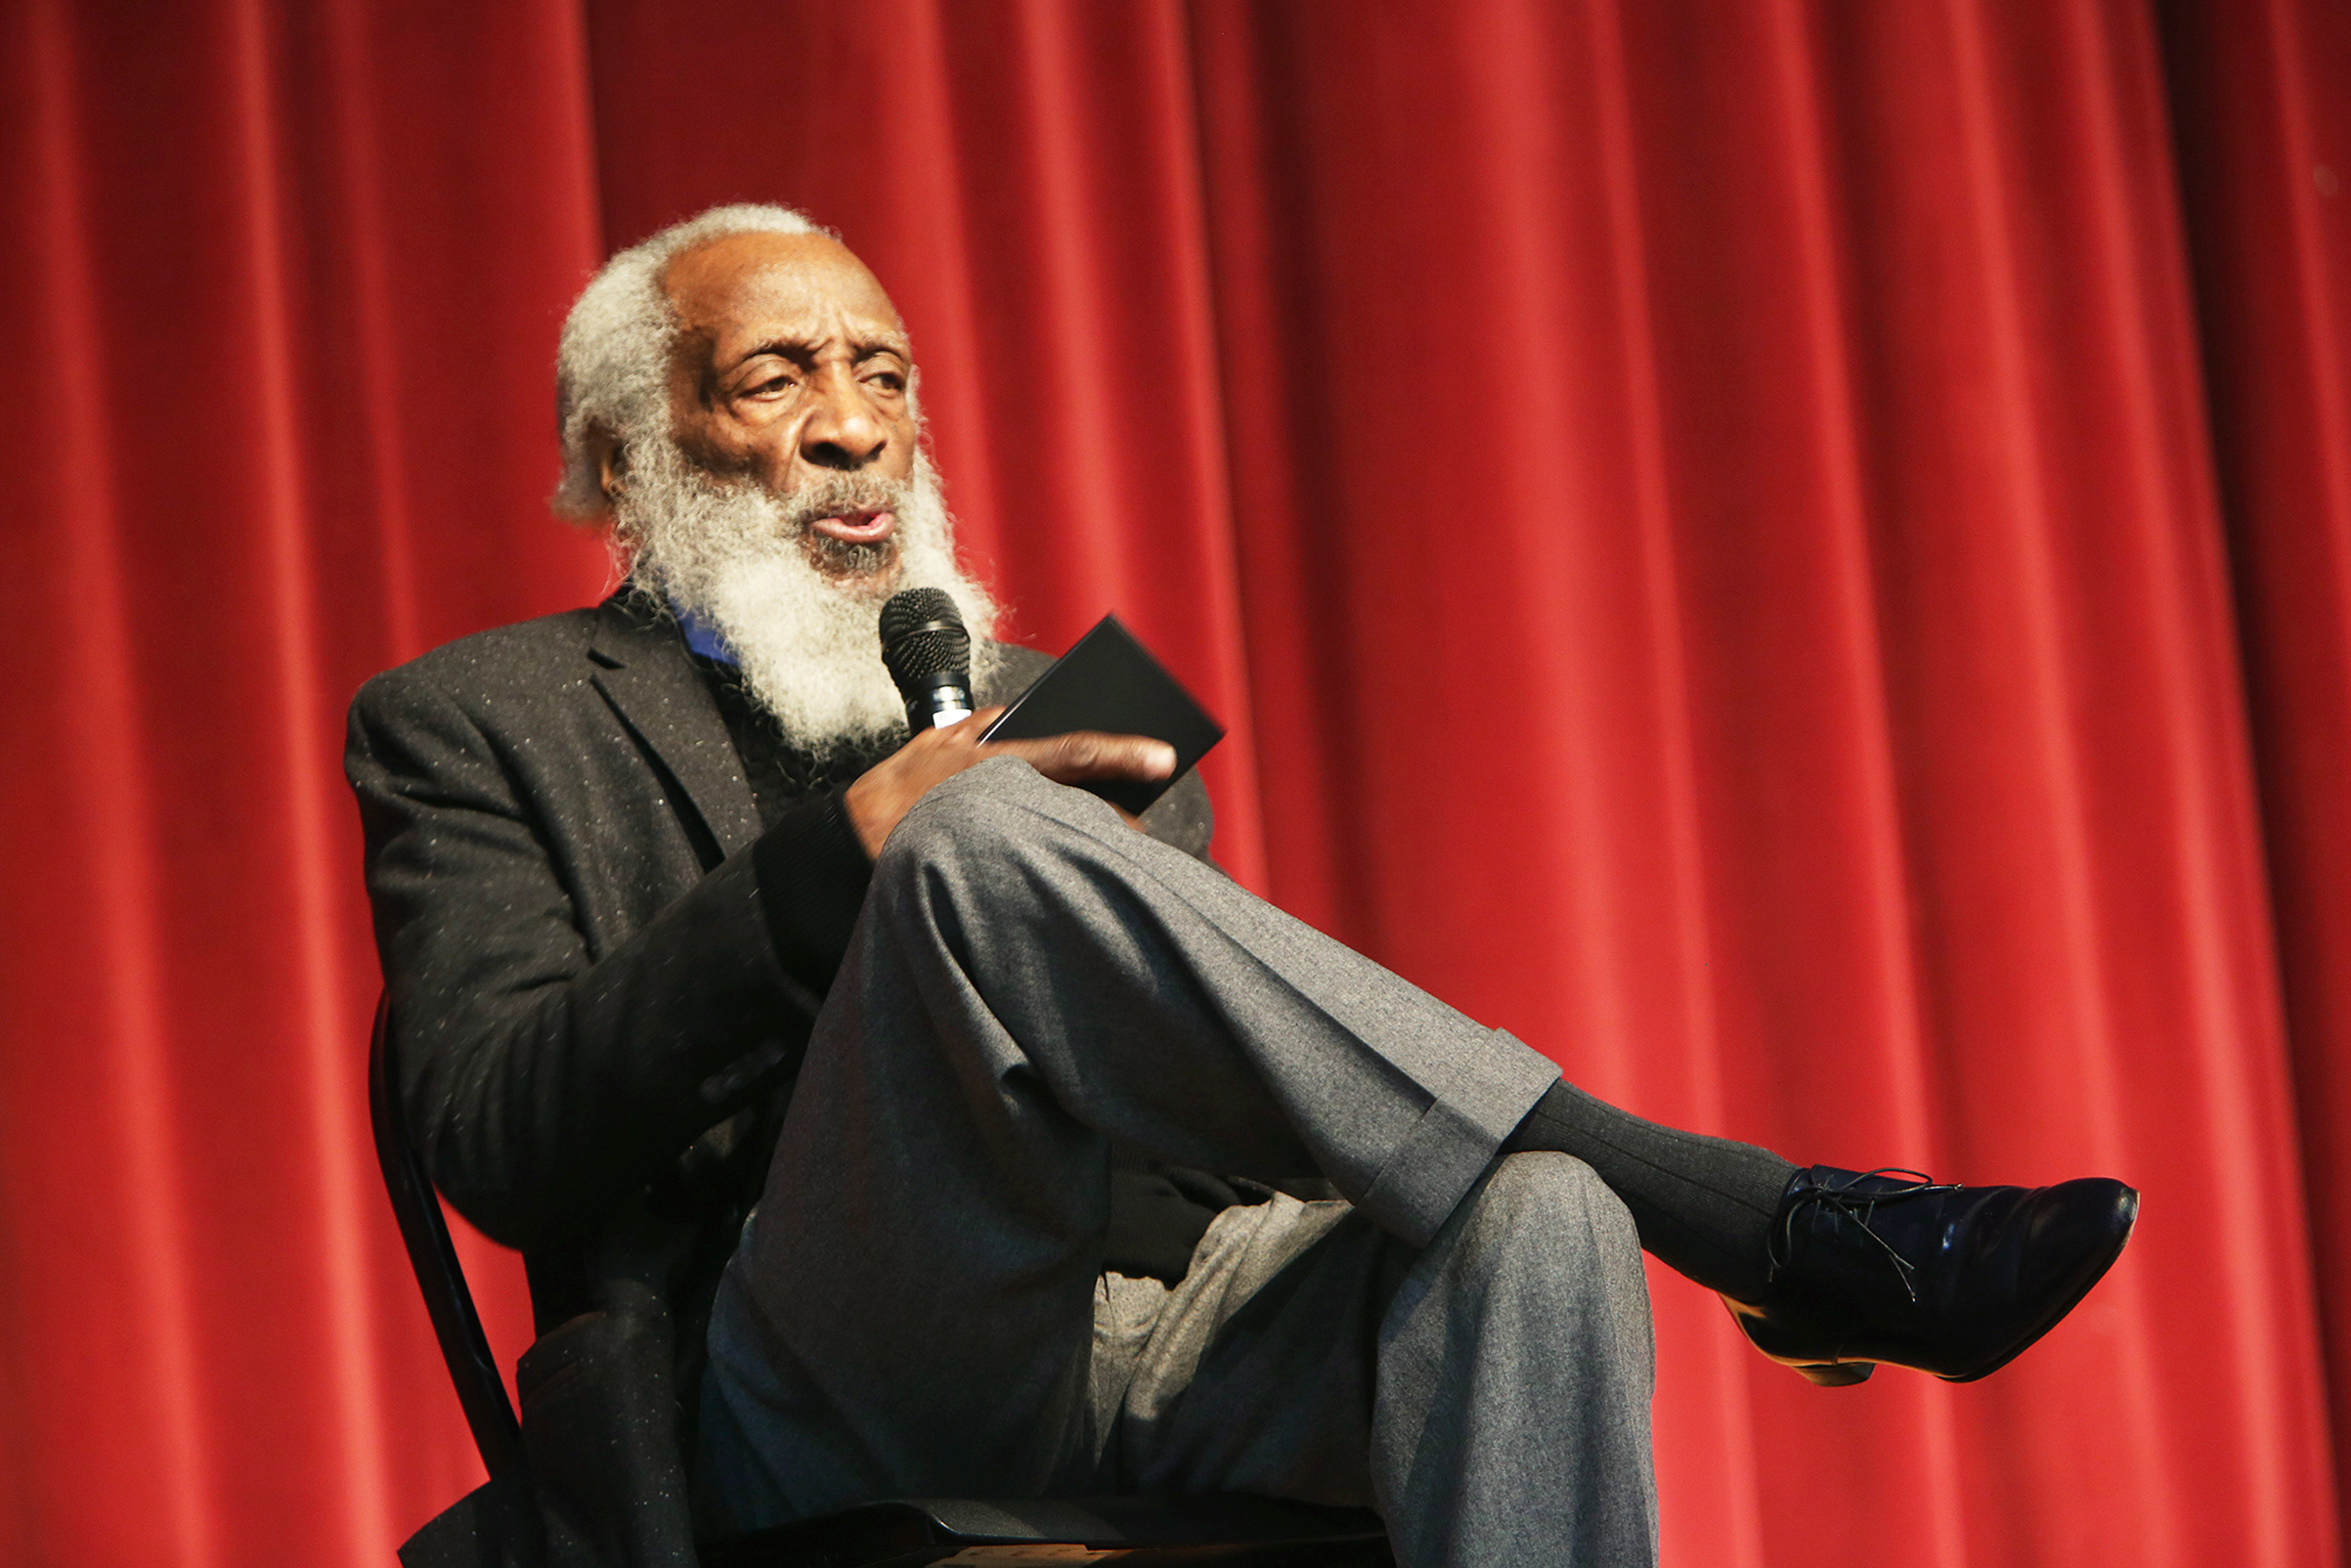 Dick Gregory, long time civil rights activist, writer, social critic, and comedian, talks to the crowd at the 16th annual Tampa Bay Black Heritage Festival, MLK Leadership Luncheon in Tampa, Fla. on Jan. 20, 2016.